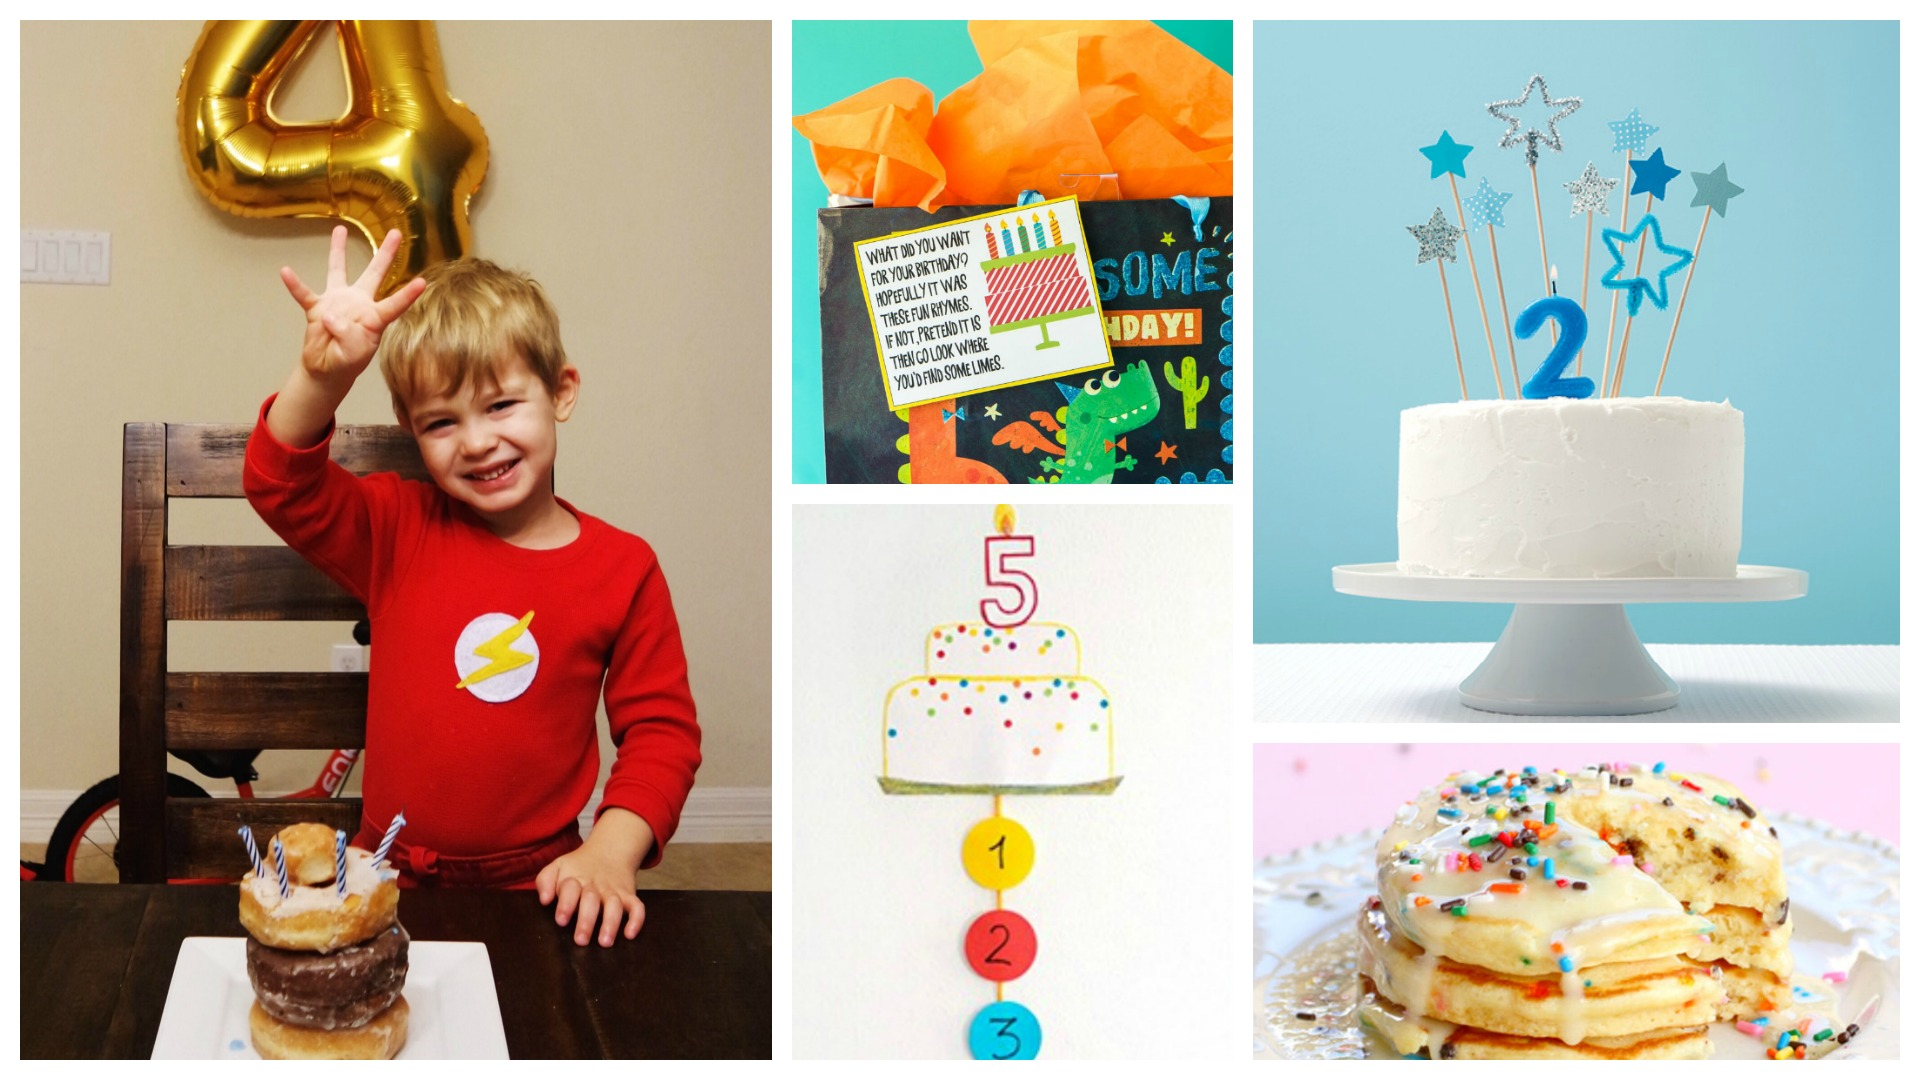 Stuck inside during your little one's birthday? There are plenty of clever ways to have a fun birthday without a party. Here are 9 different birthday celebration ideas at home. #birthdaygirl #birthdayboy #toddlerbirthday